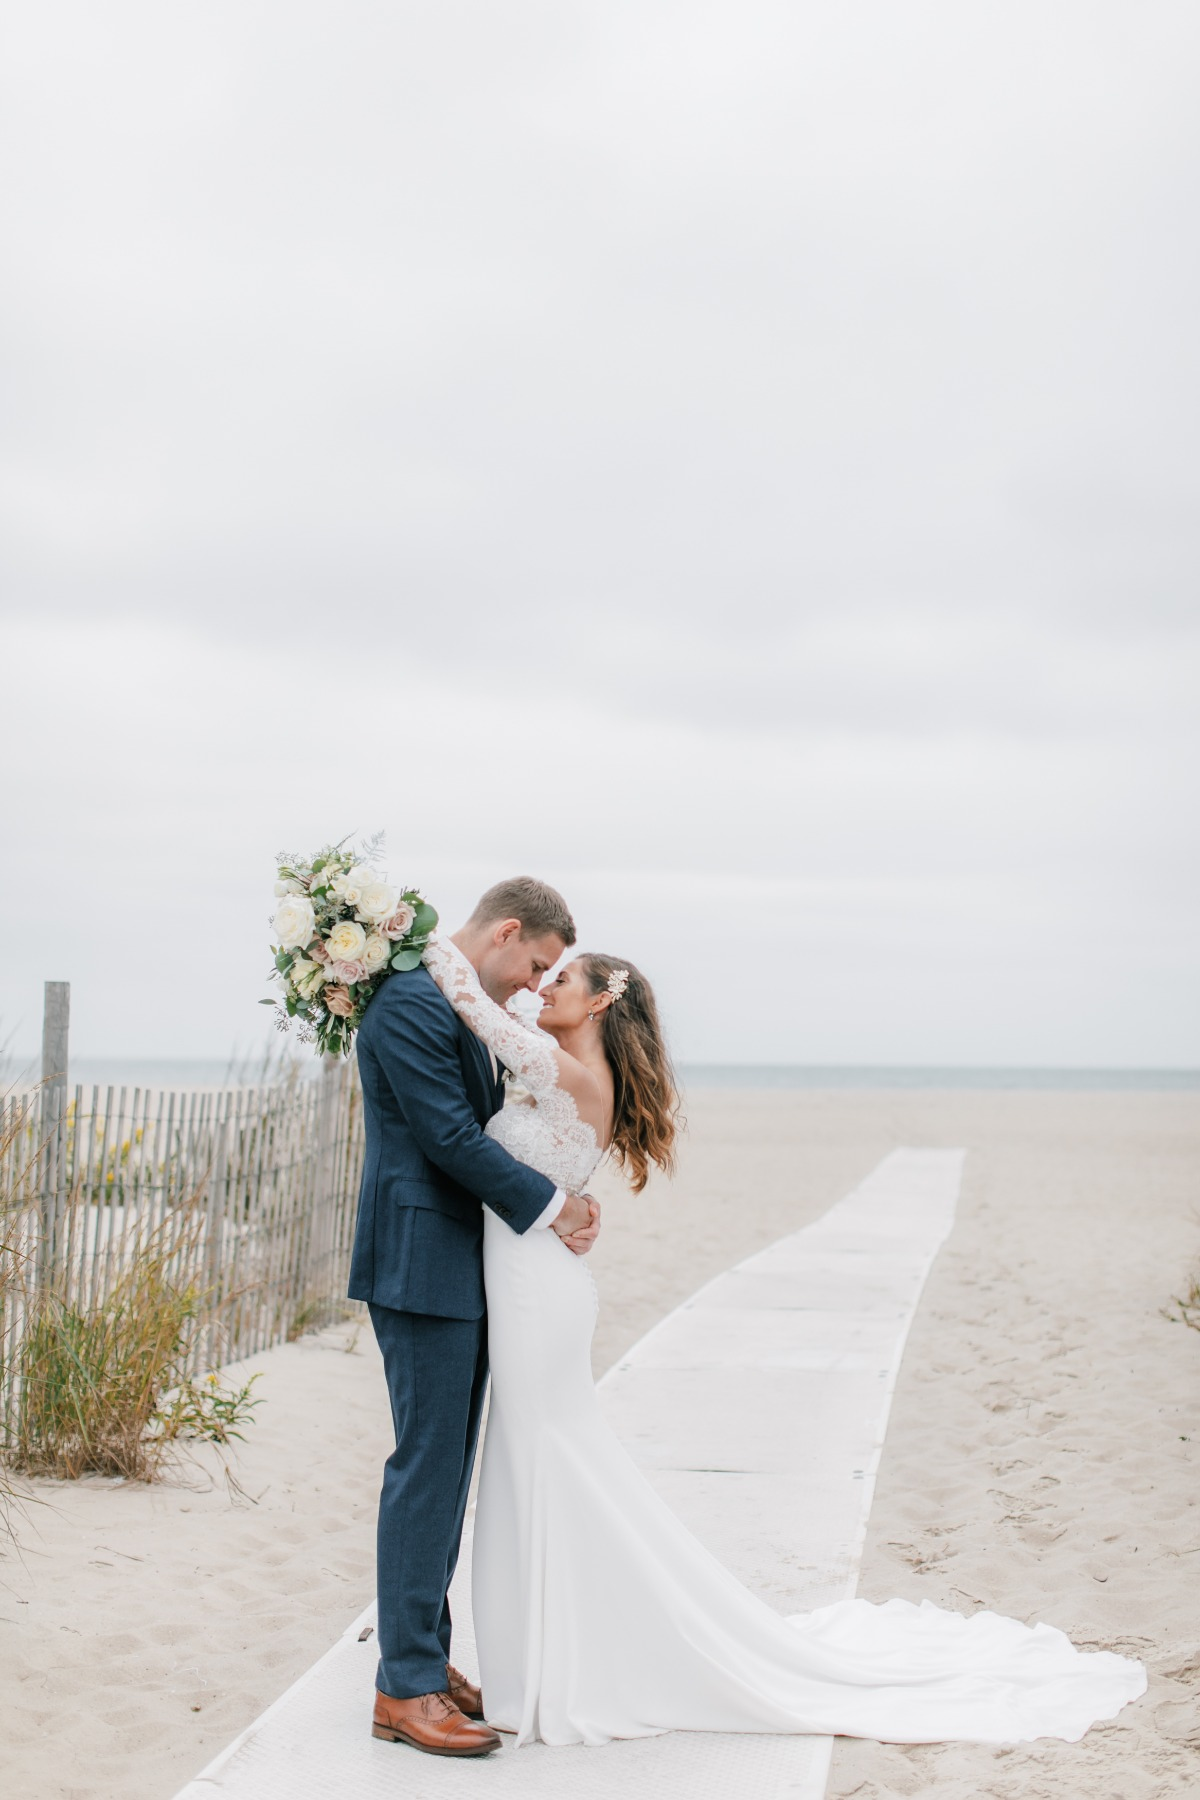 Beautiful wedding in Cape May